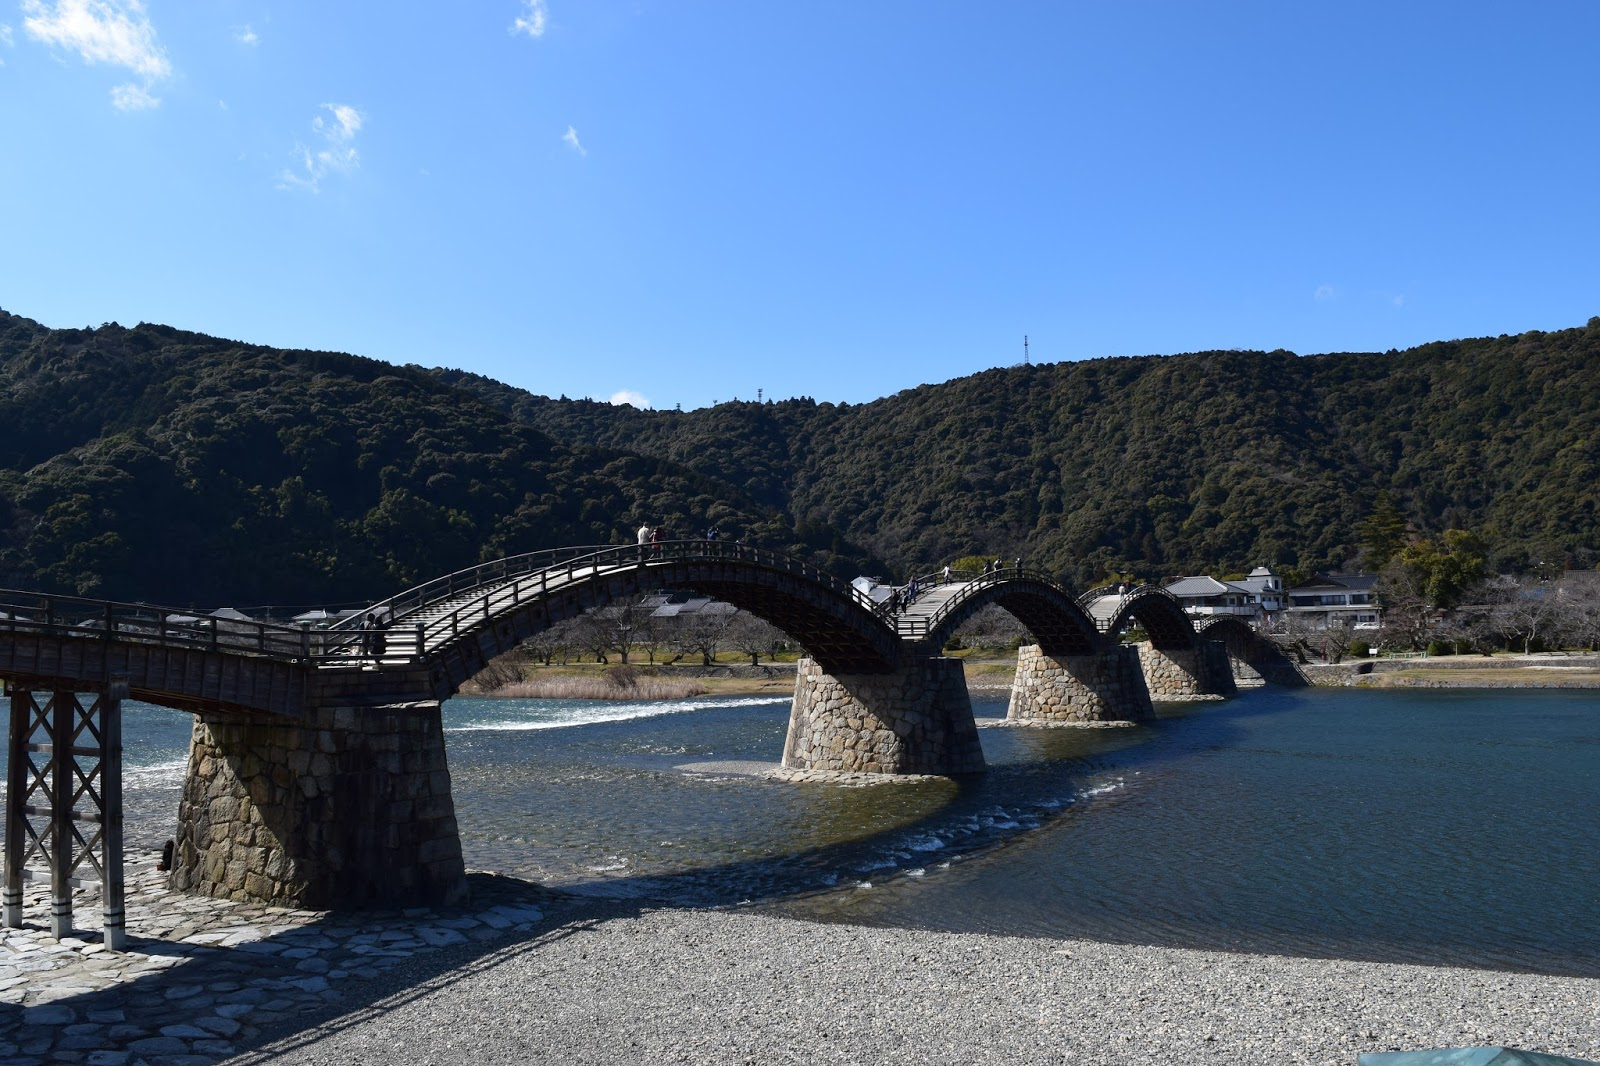 Kintaikyo bridge